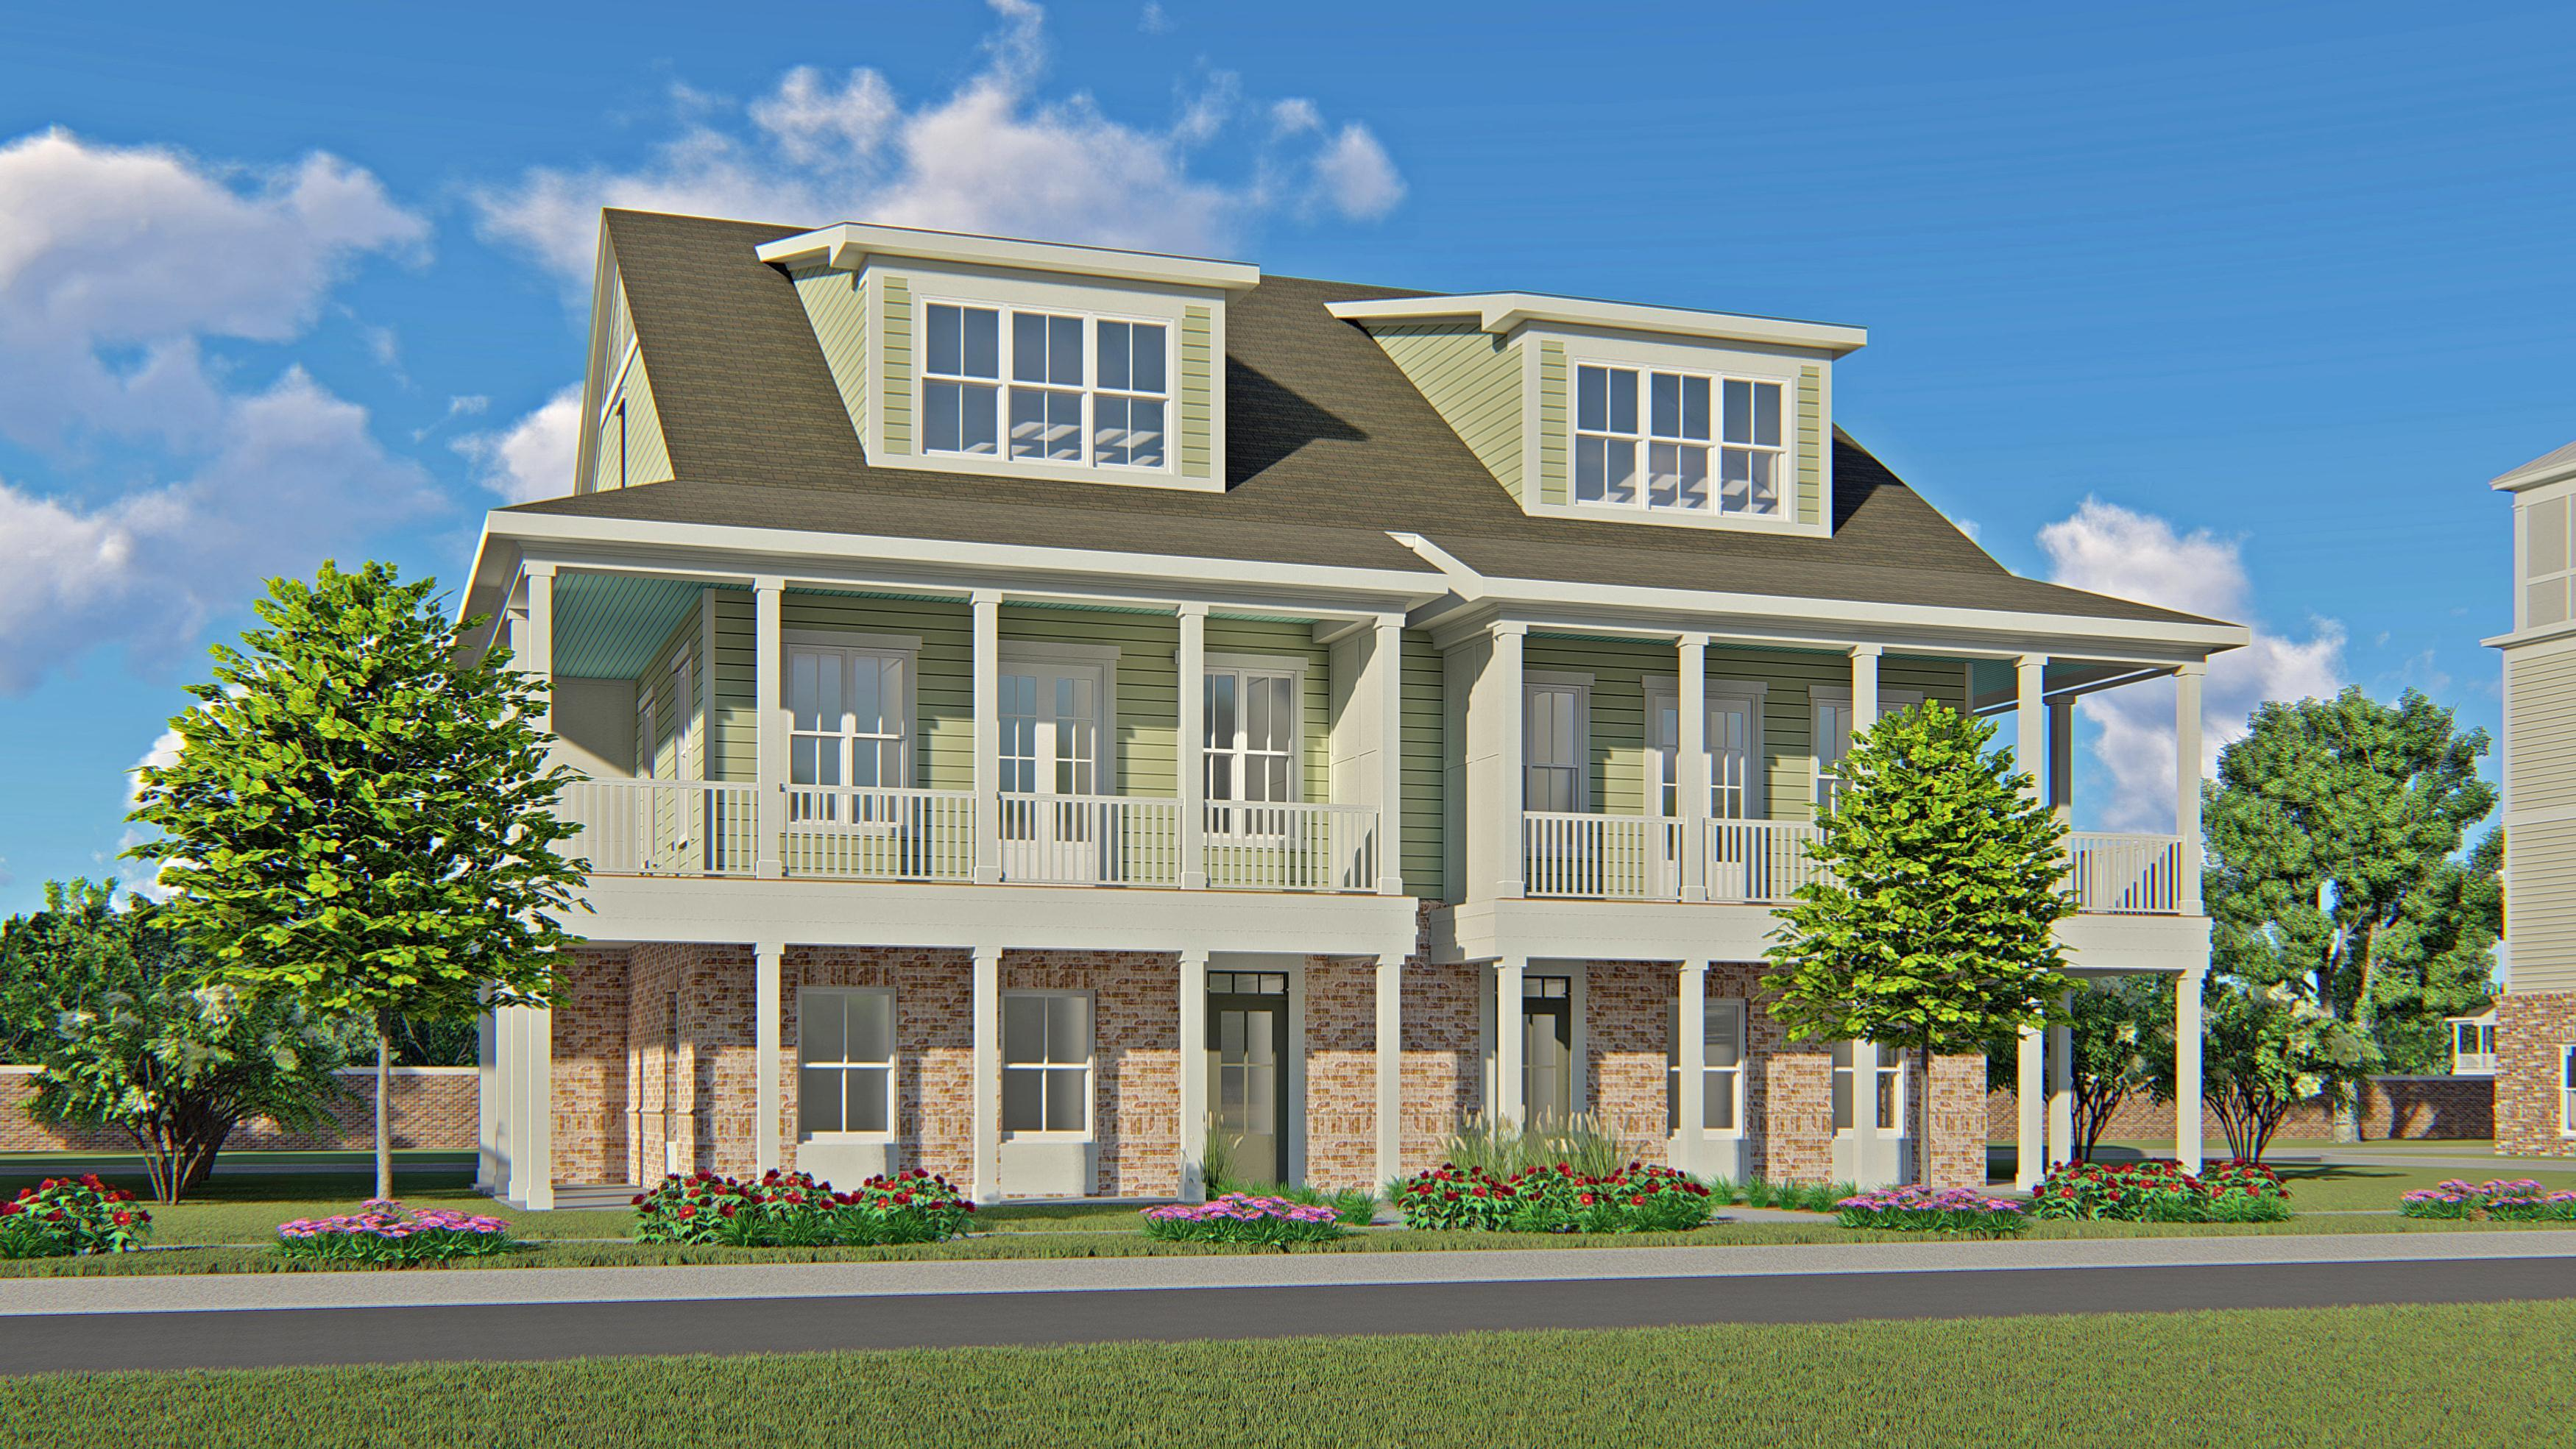 Exterior featured in the Three Story Wraparound Porch Townhome By CRG Companies in Myrtle Beach, SC